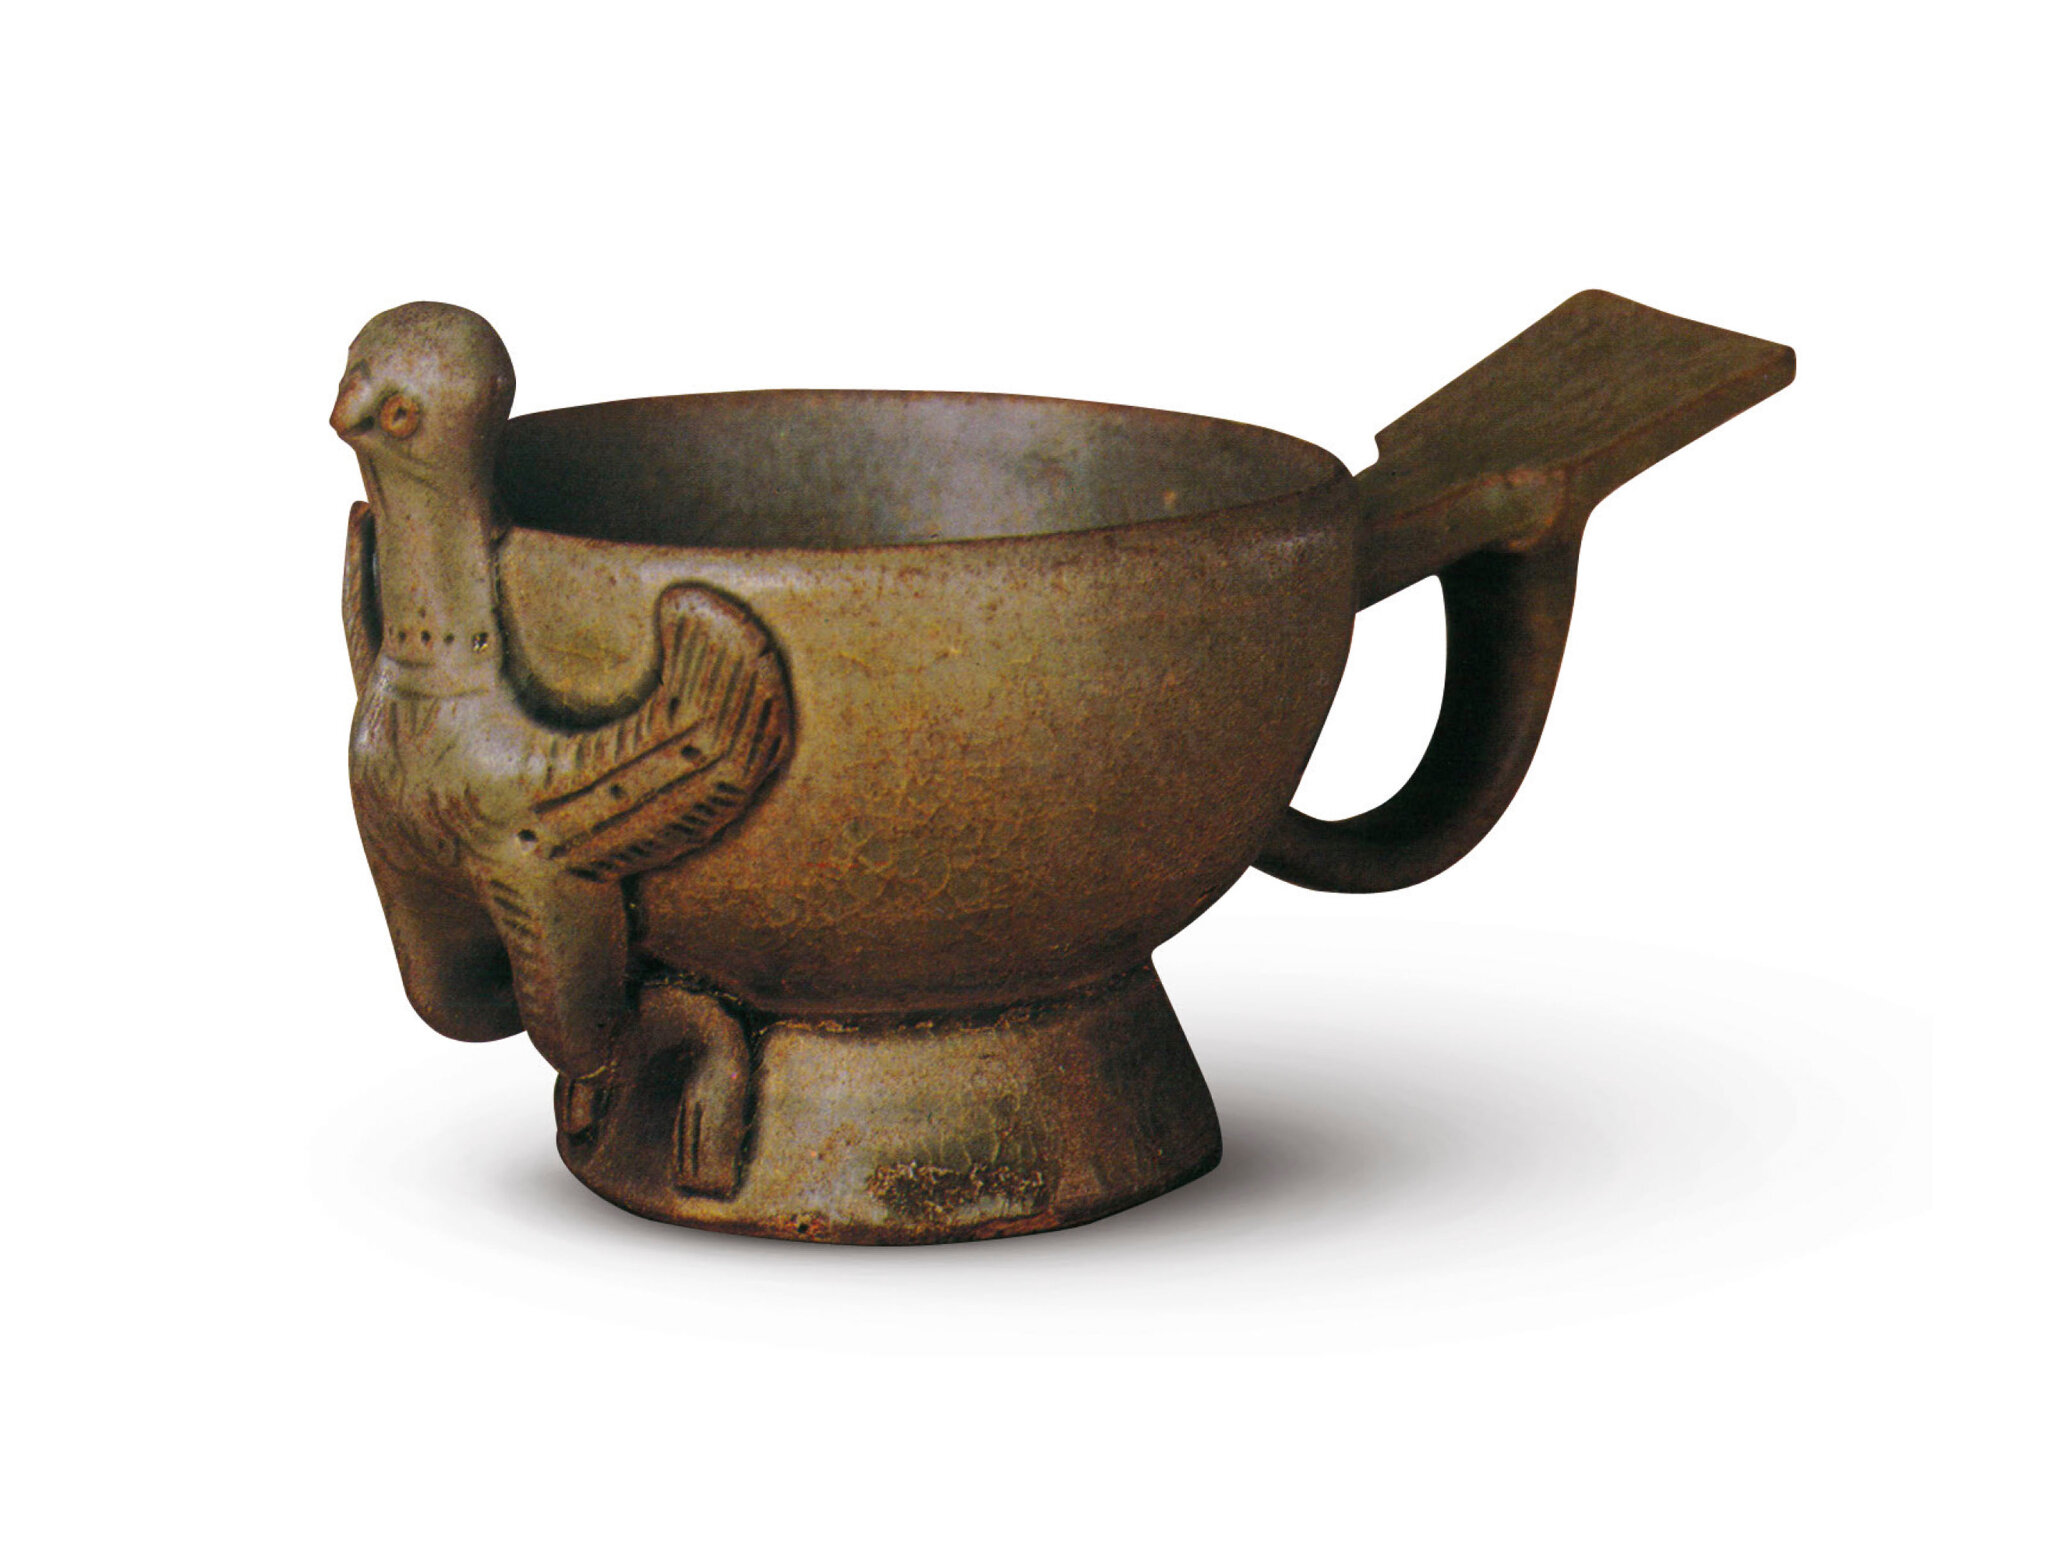 A Yue bird-form cup, Five Dynasties (907-960), in the collection of the Palace Museum, Beijing